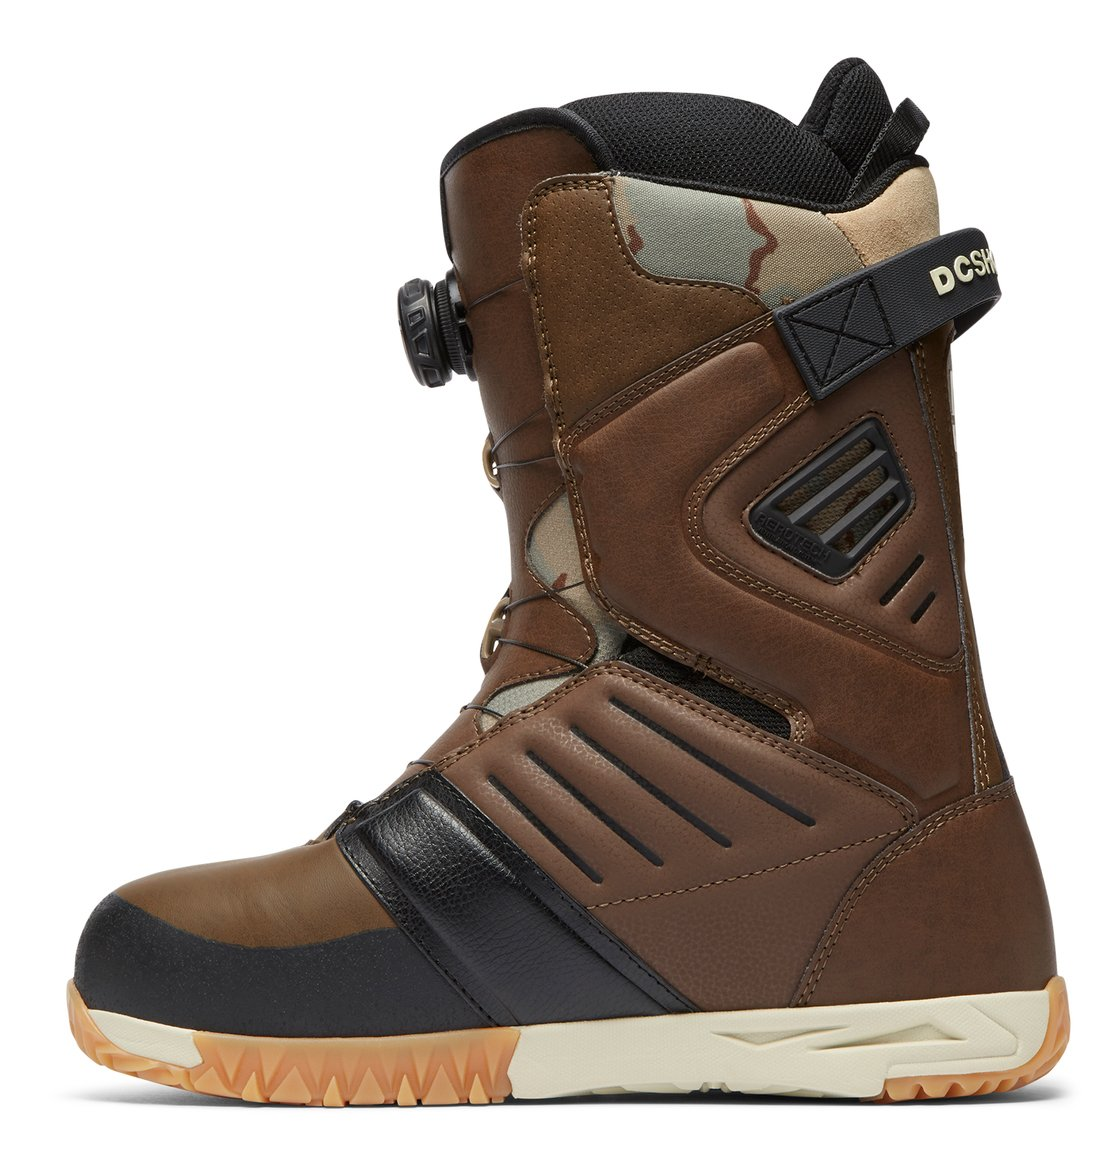 DC-Shoes-Judge-BOA-Snowboard-Boots-for-Men-BOA-Snowboard-Boots-Maenner